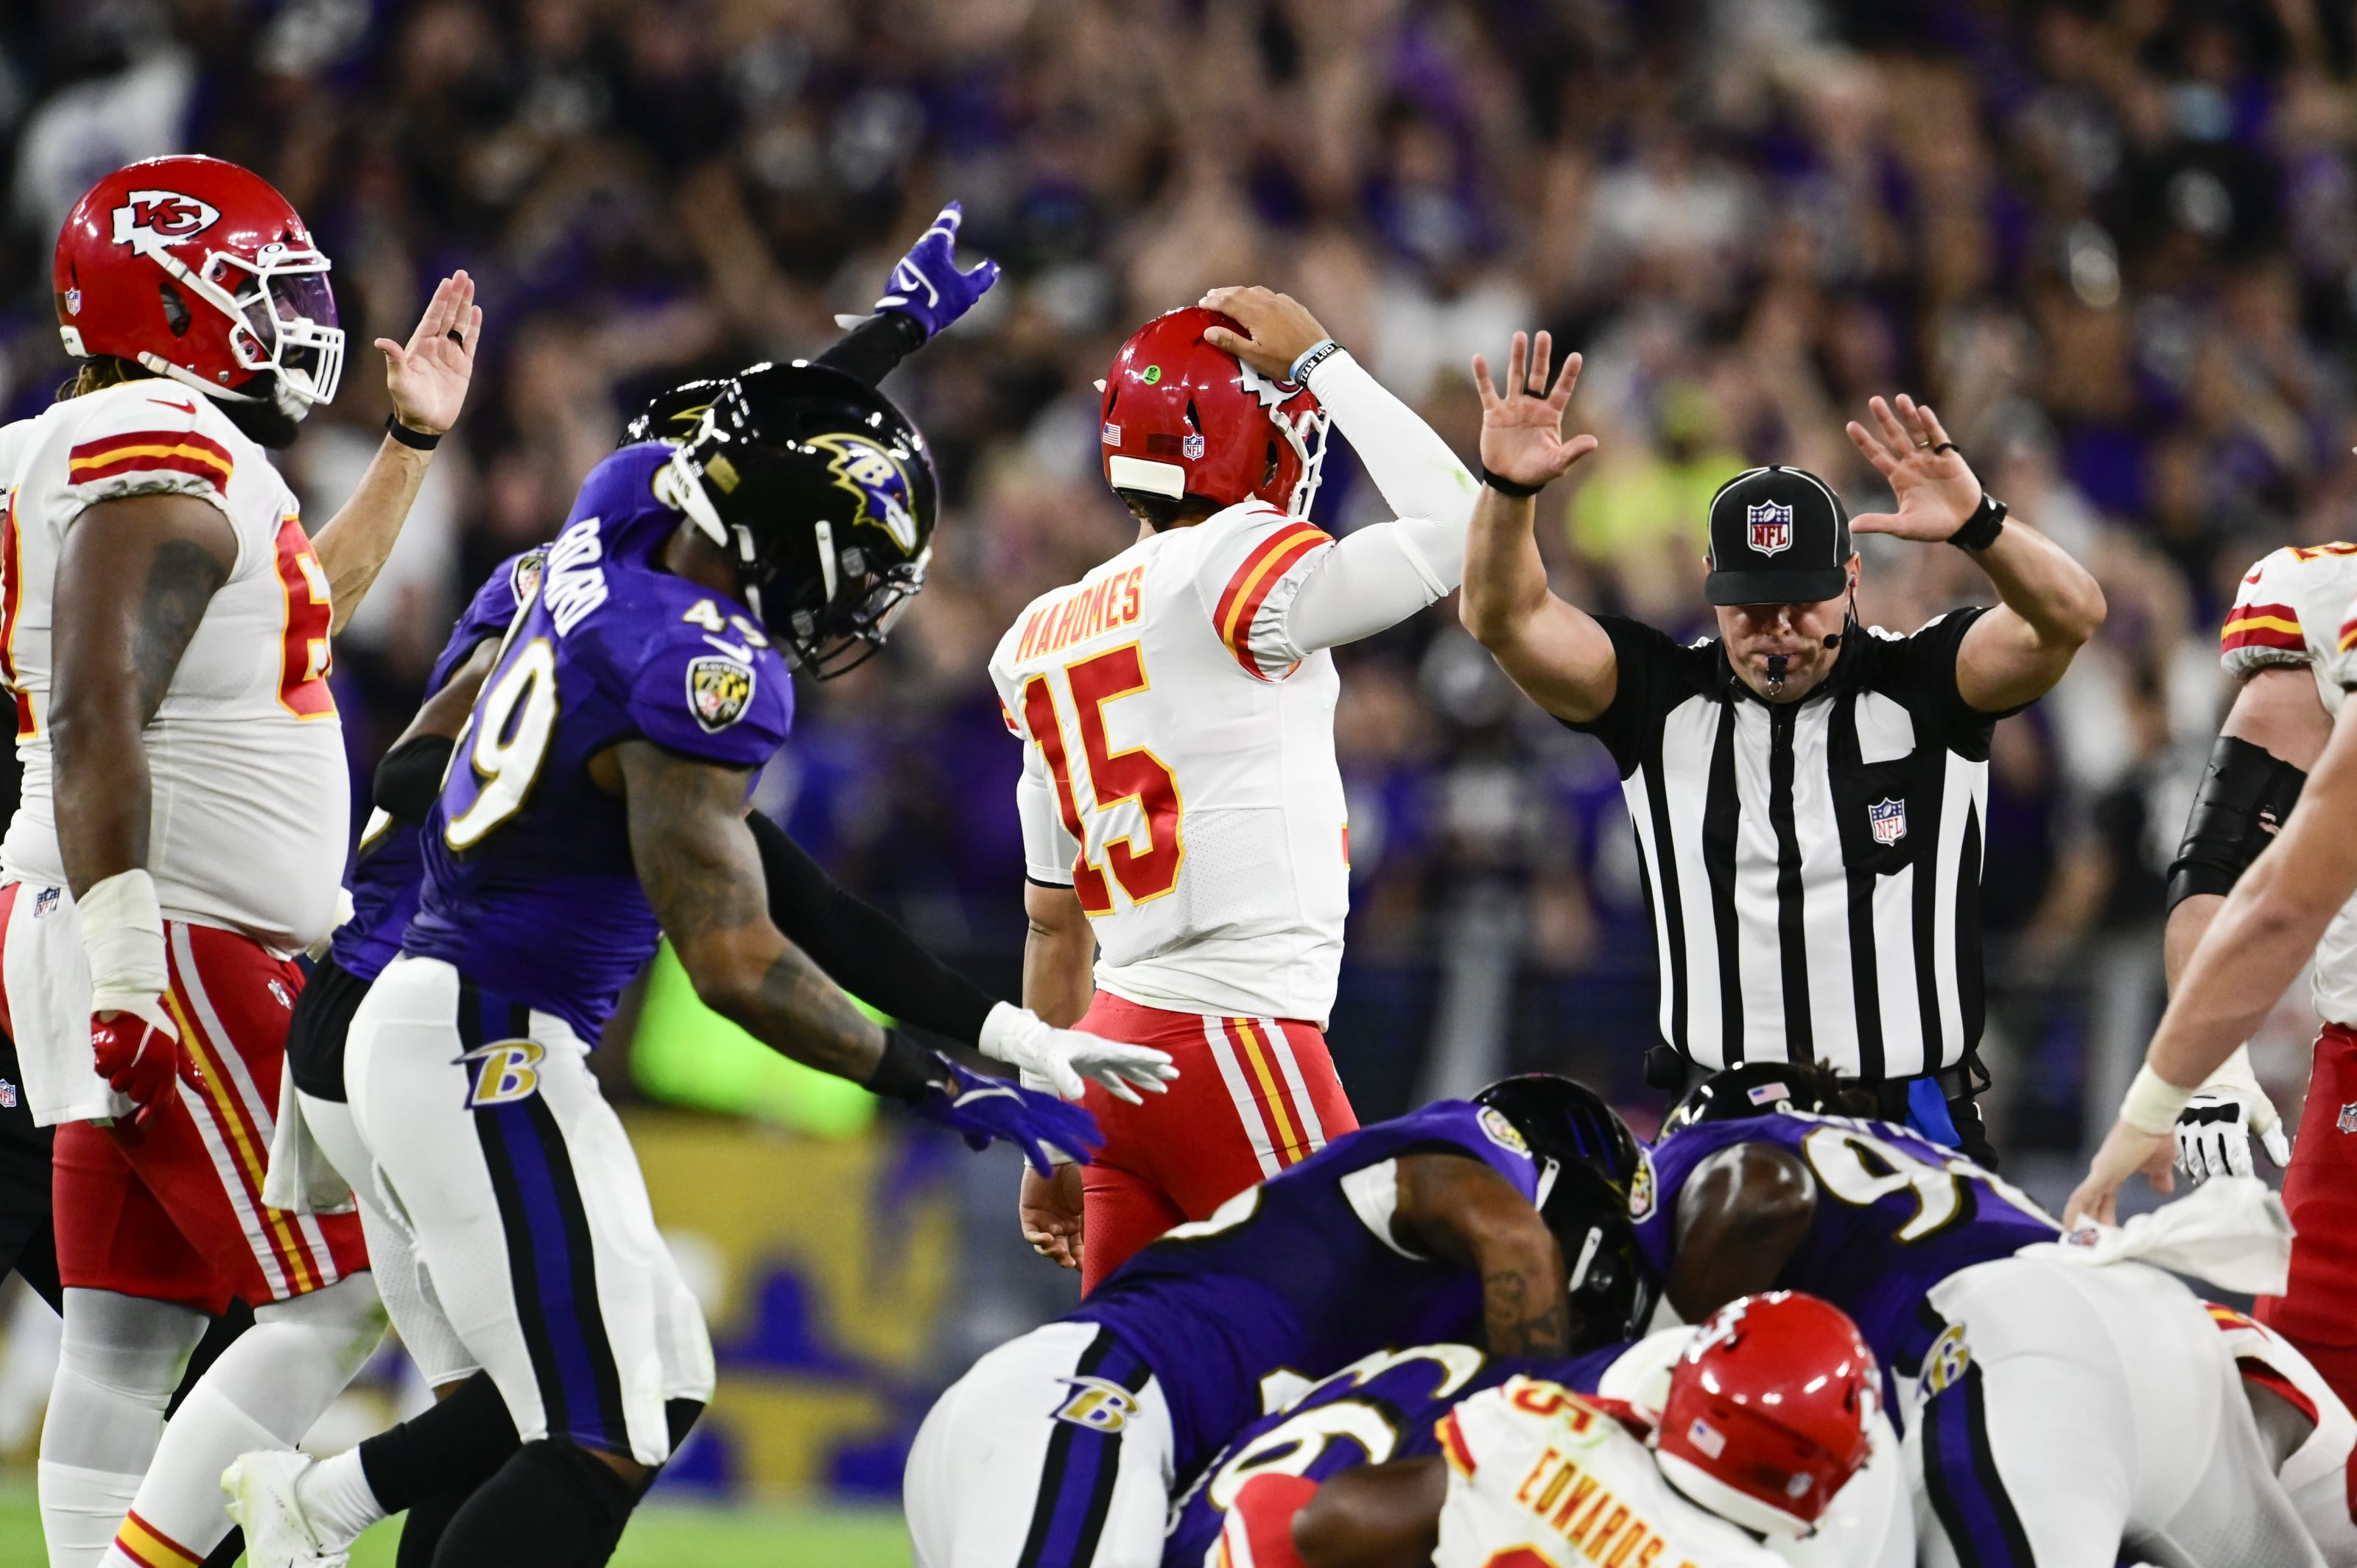 Kansas City Chiefs: Studs and duds from Week 2 vs. Ravens